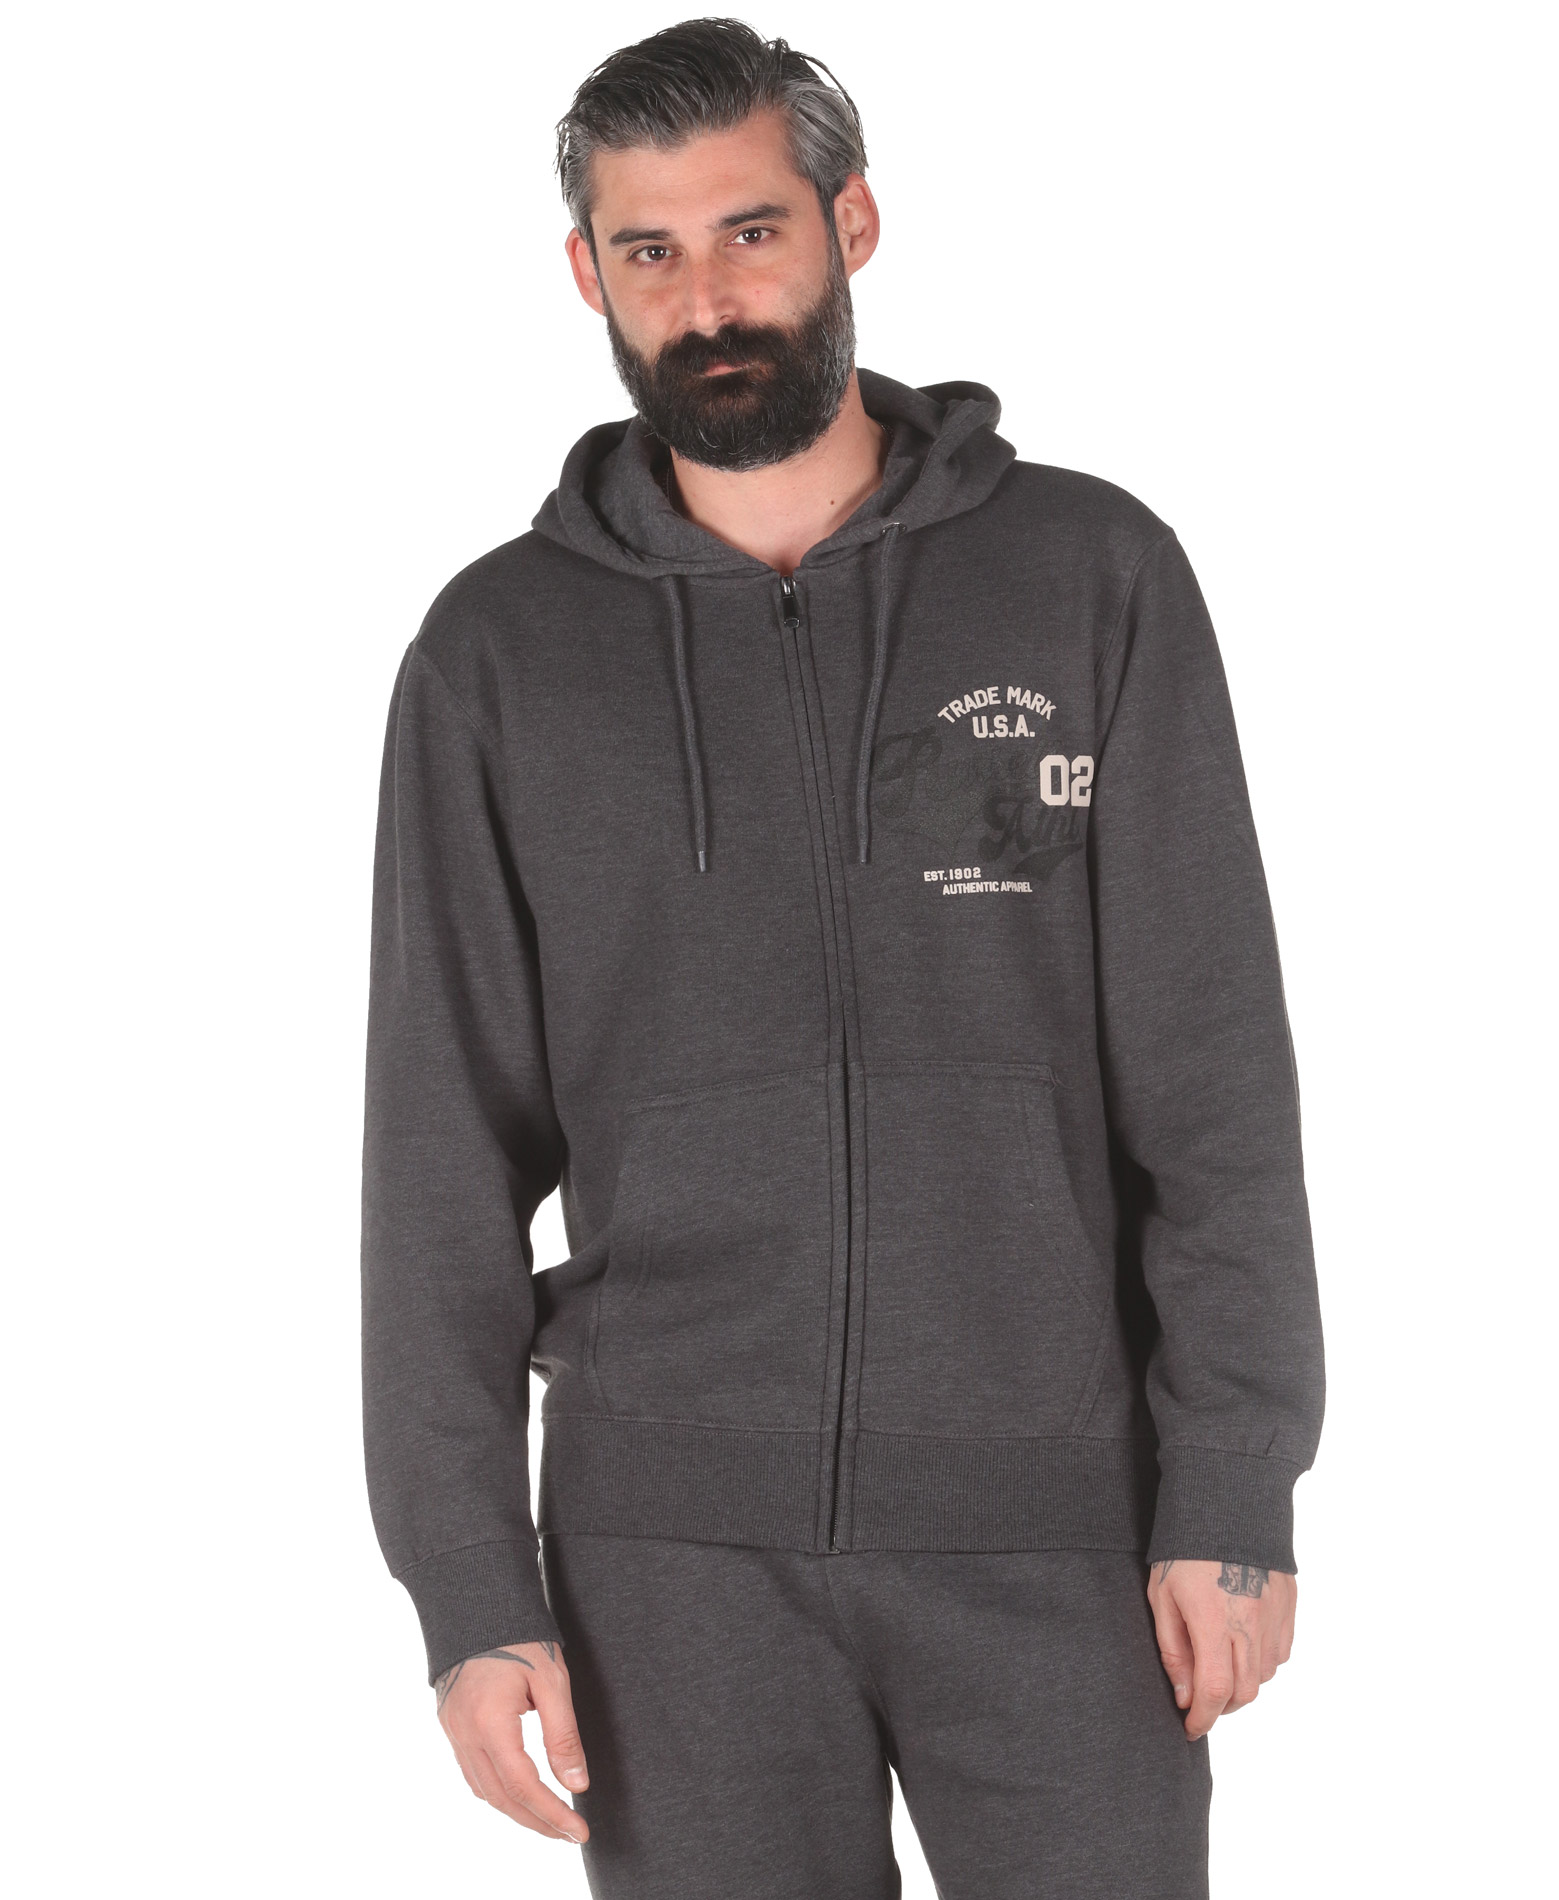 Russell Athletic TRADE MARK USA – ZIP THROUGH HOODY A0-027-2-098 Ανθρακί